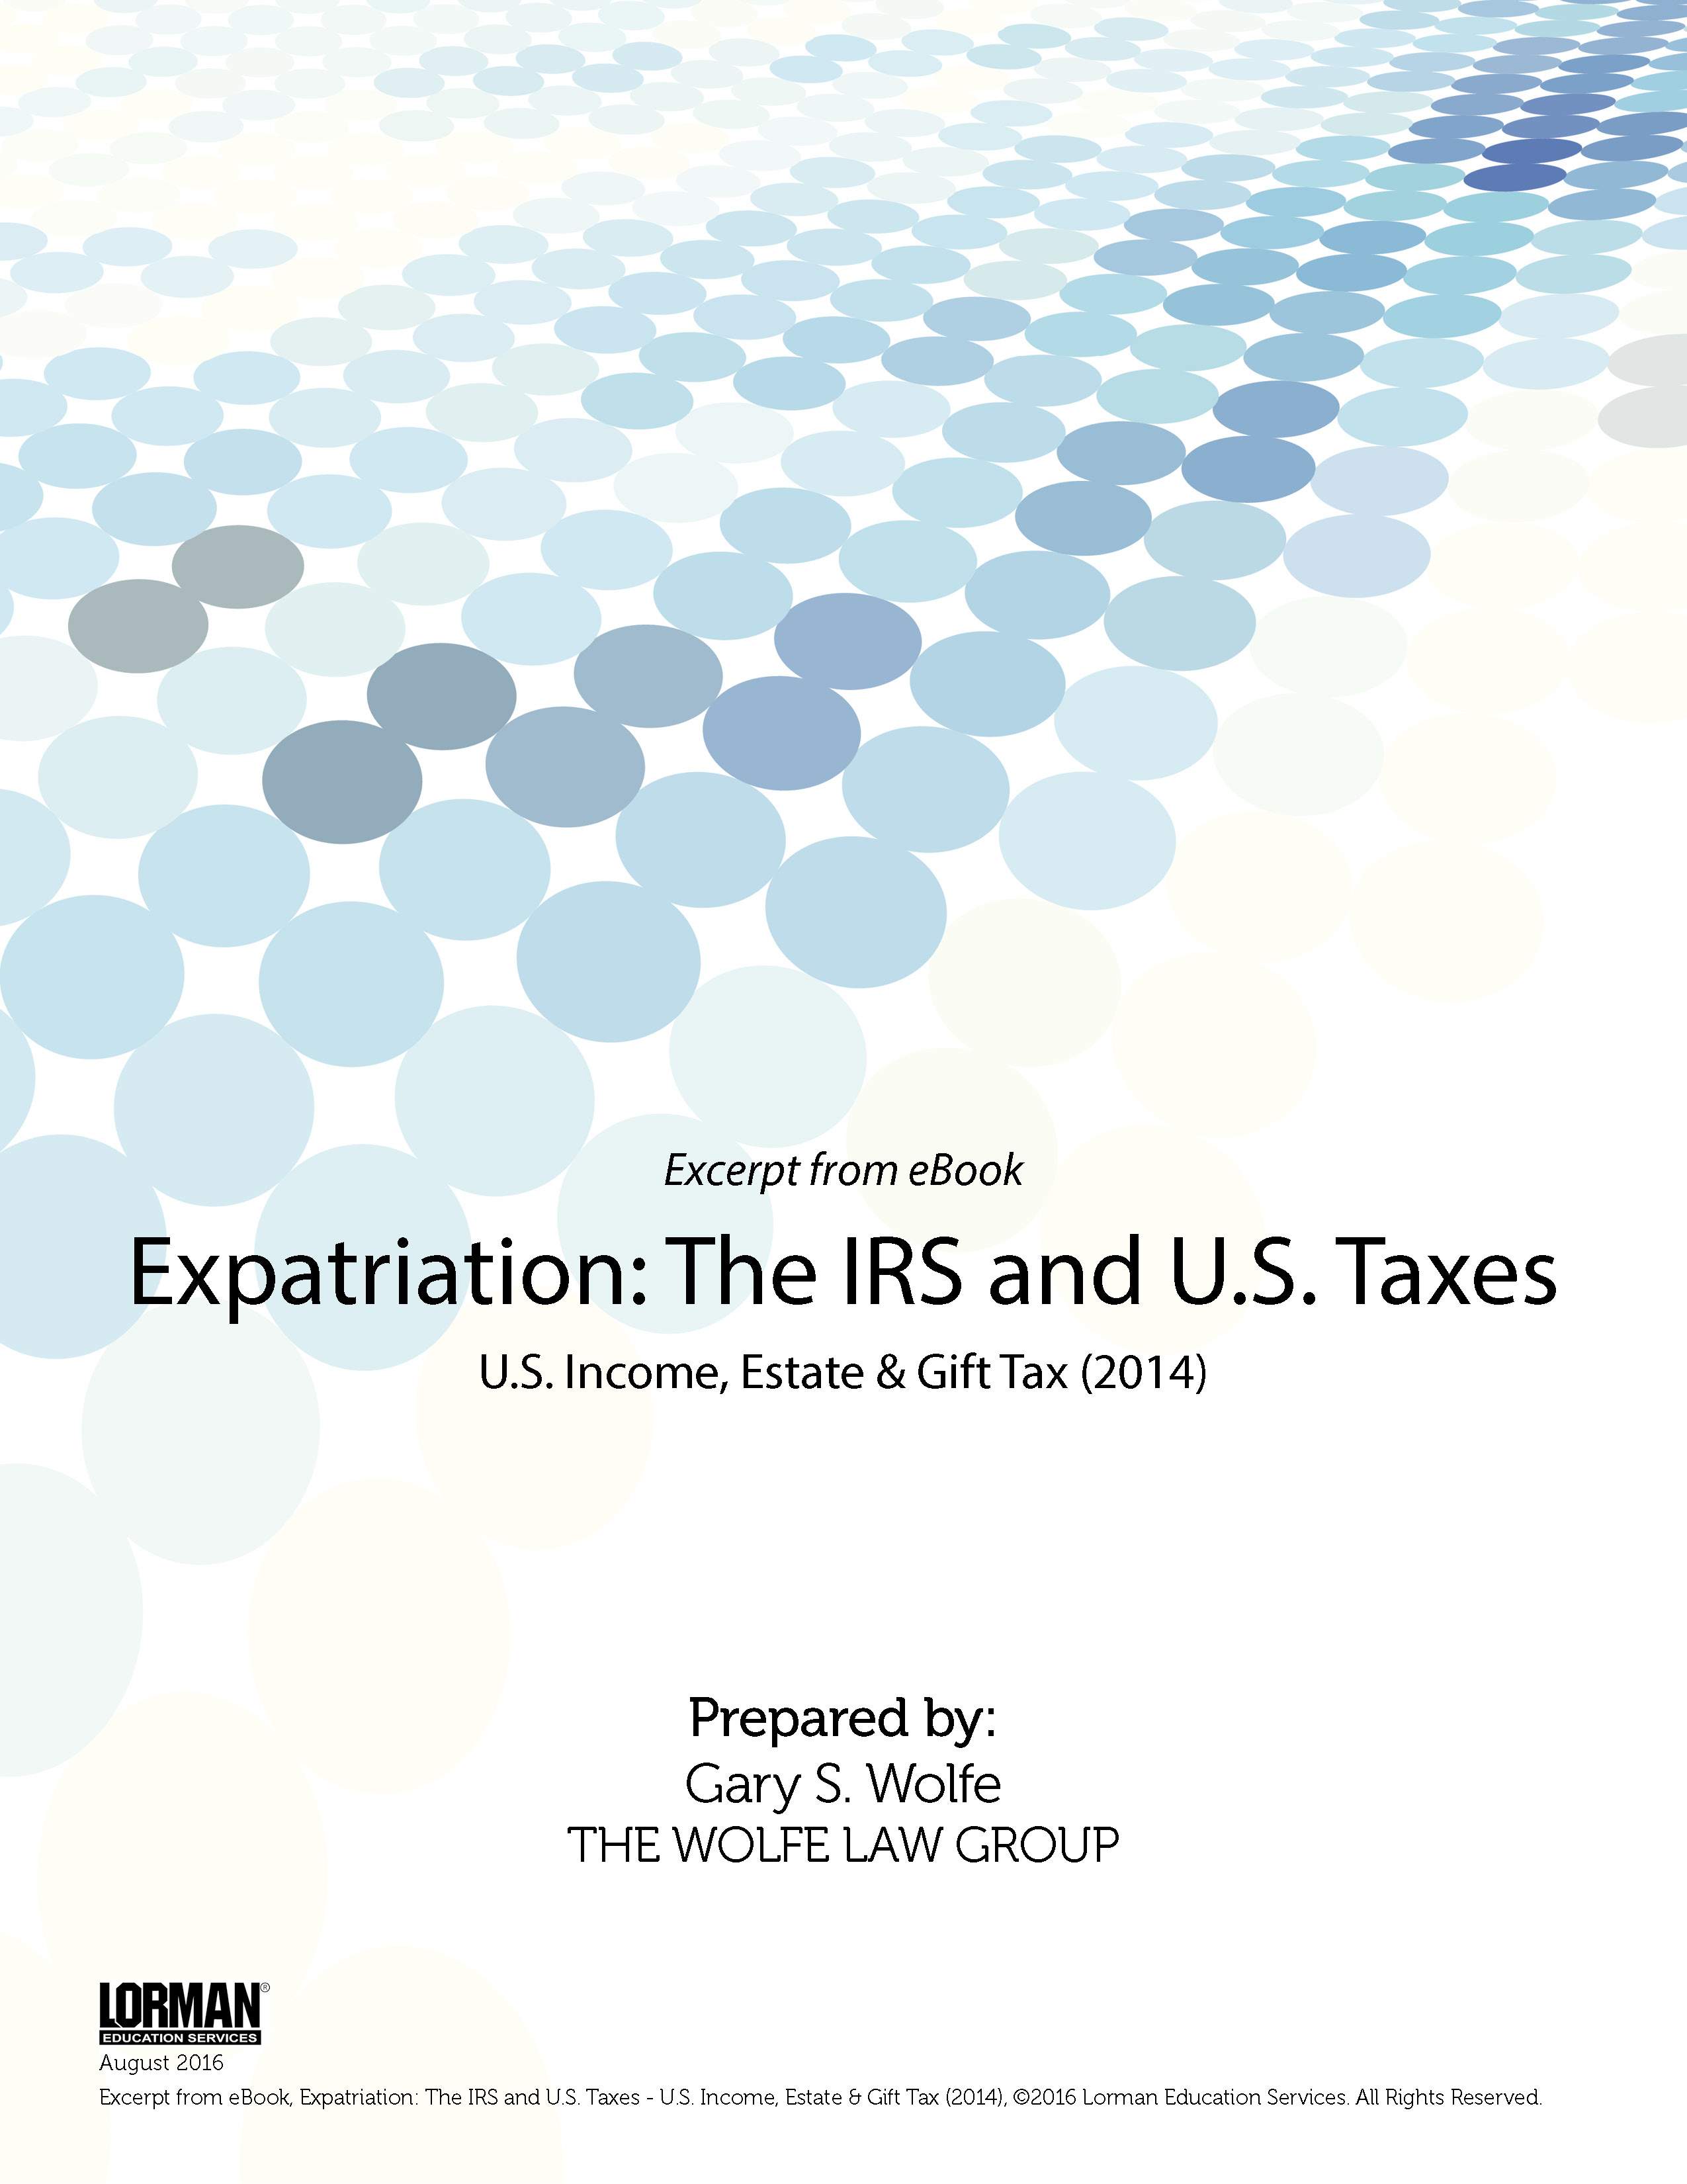 Expatriation - The IRS and U.S. Taxes - U.S. Income, Estate and Gift Tax (2014)